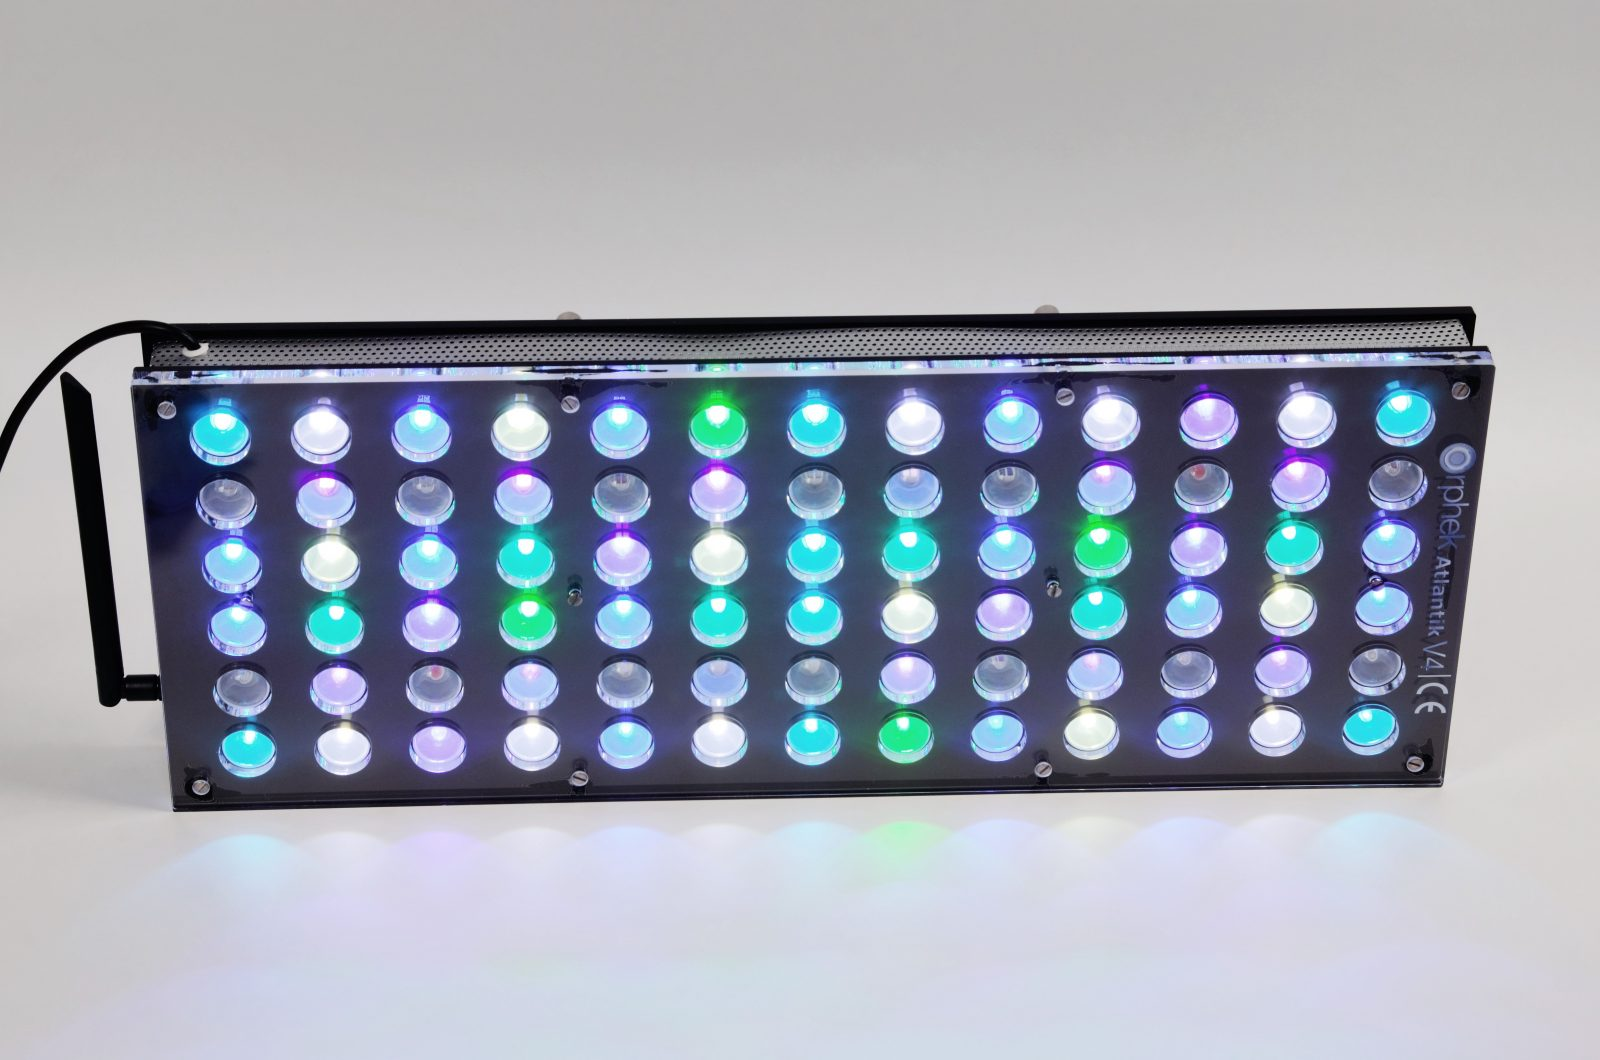 Orphek-Aquarium-LED-Lighting-Reef-Atlantik-V4-lumière-sur-canal 1 + 2 + 3